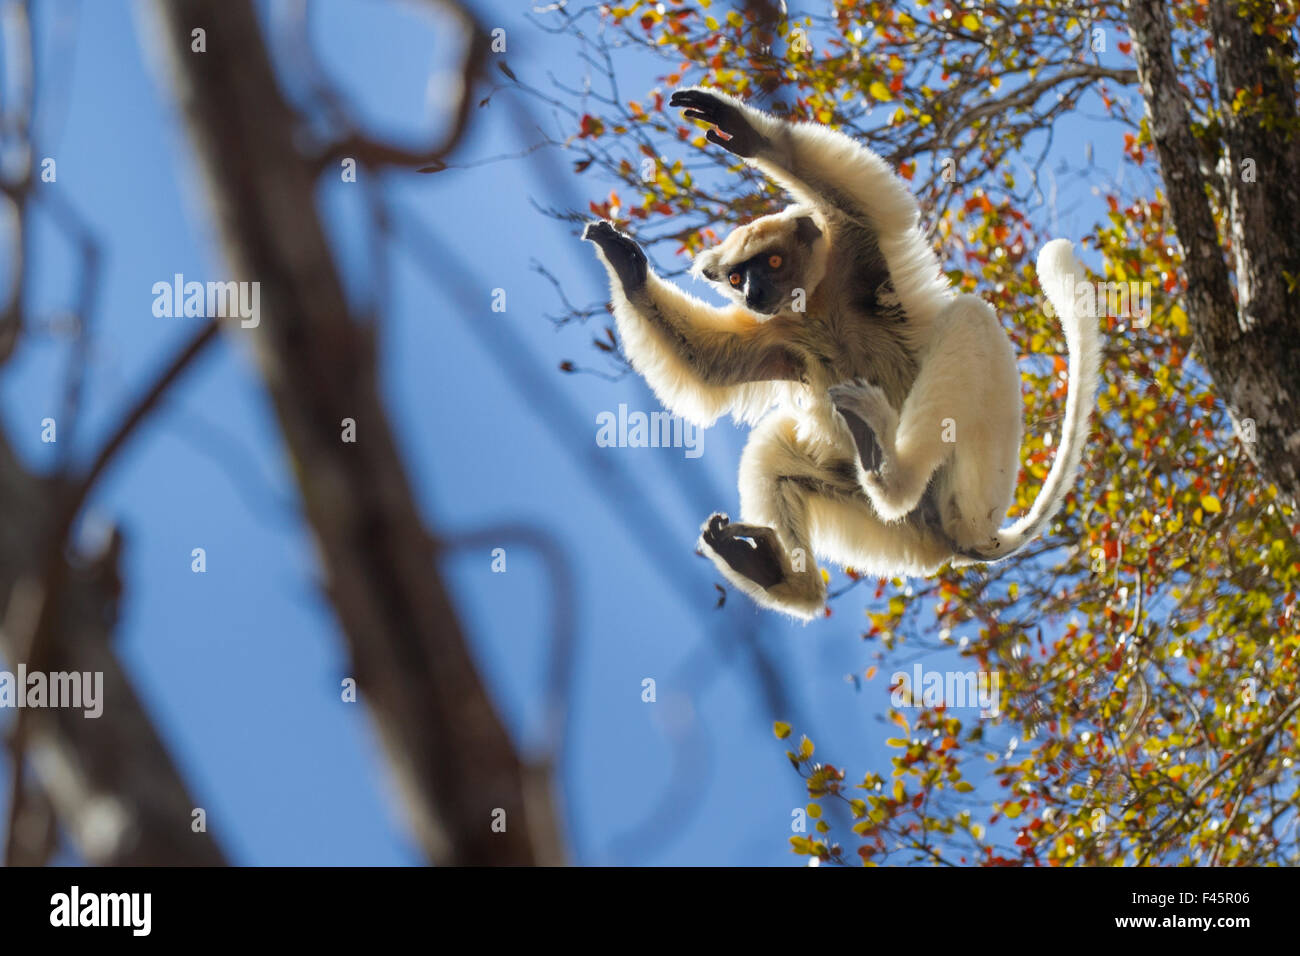 Golden-crowned Sifaka (Propithecus tattersalli) leaping through forest canopy. Forests adjacent to the village of - Stock Image